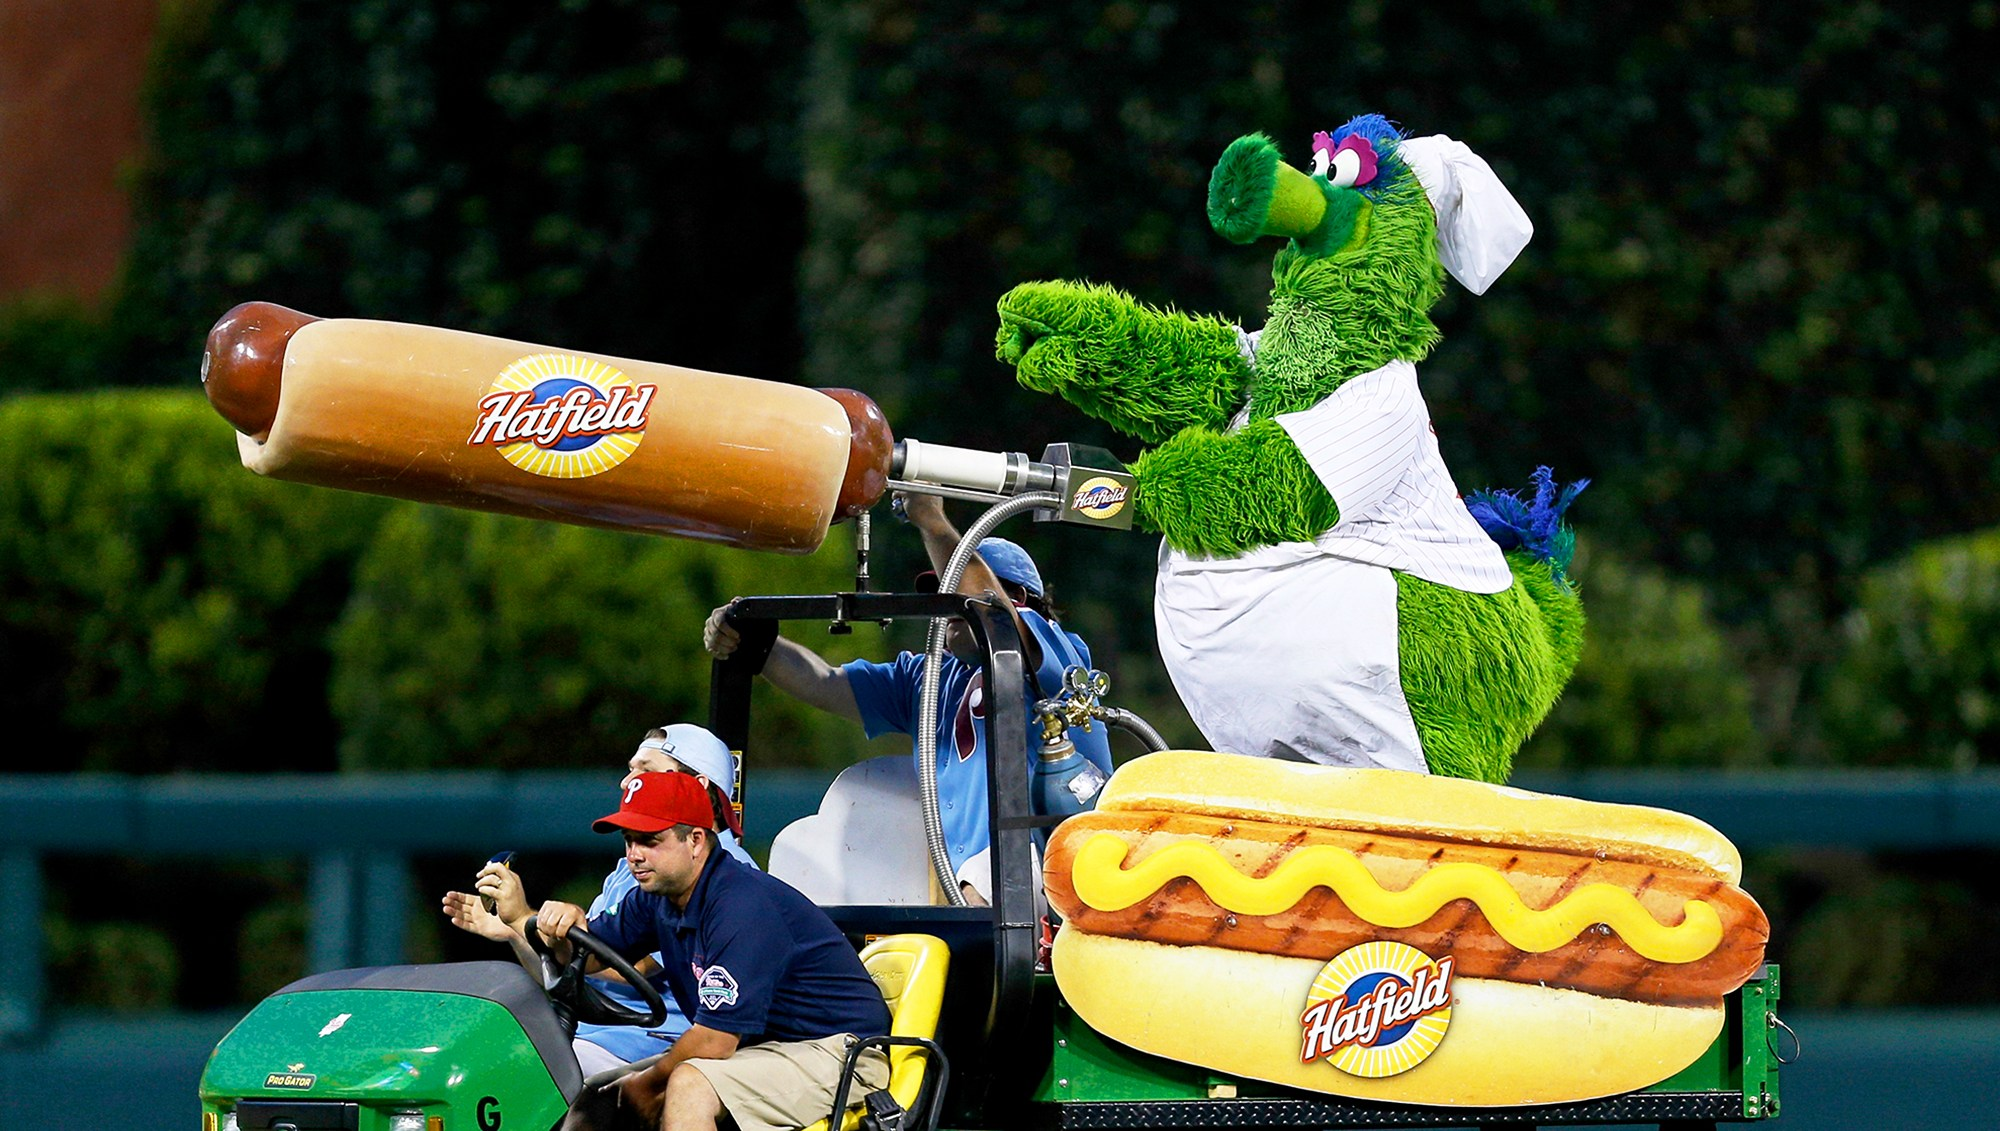 The Philadelphia Phillies mascot the Phillie Phanatic rides a Hatfield Hot Dog cart in the outfield during the game in Philadelphia, Pennsylvania.